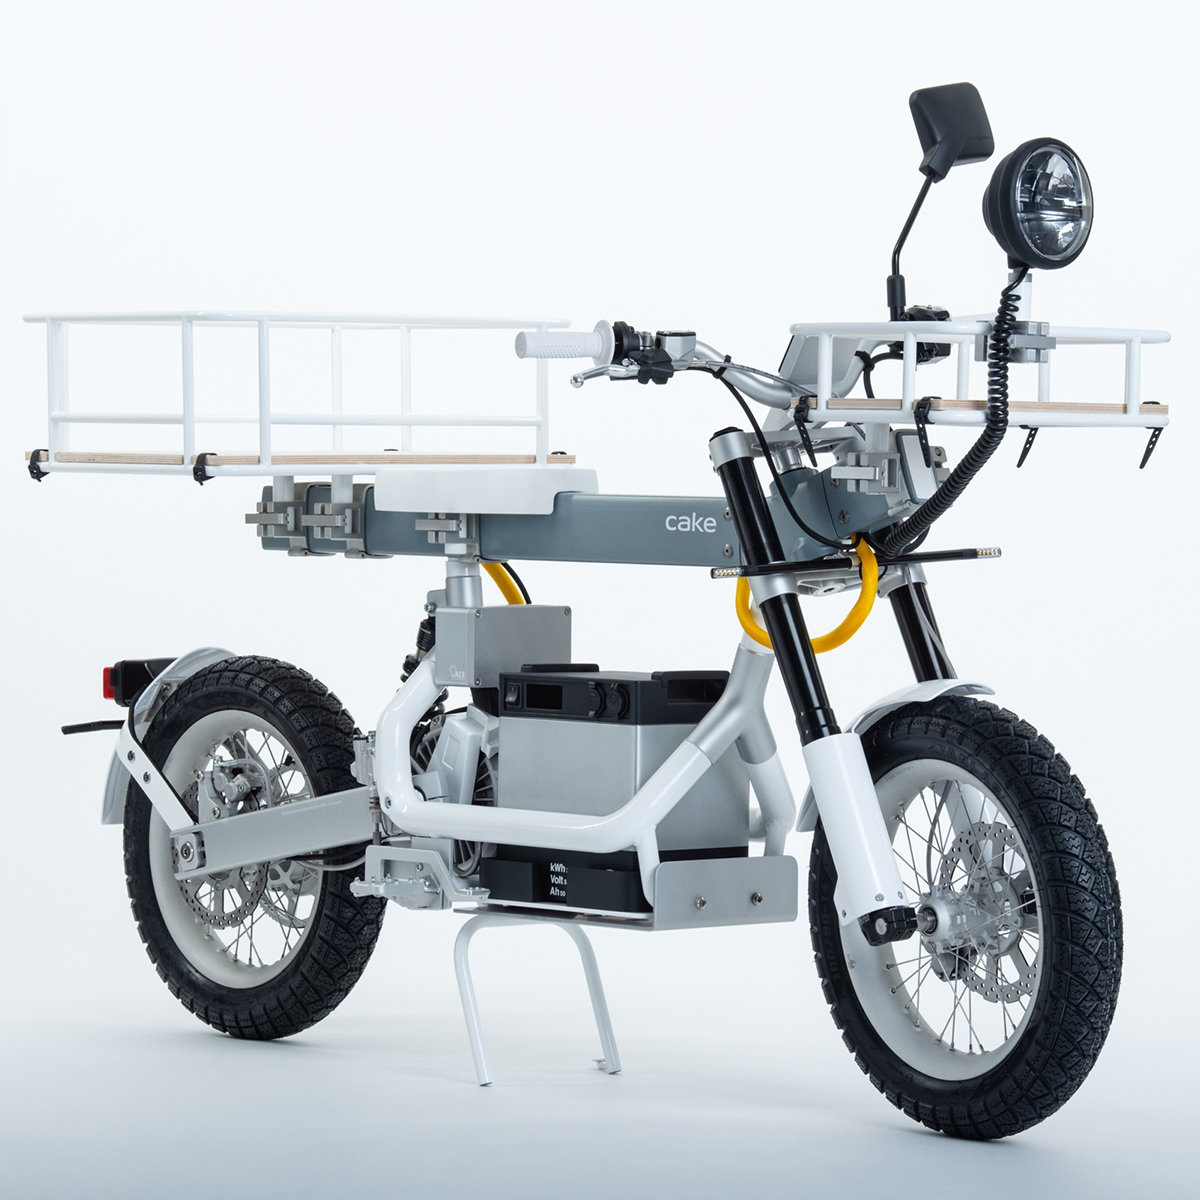 CAKE Unveils Electric On-and-Off Road Capable Utility Motorcycle Ösa